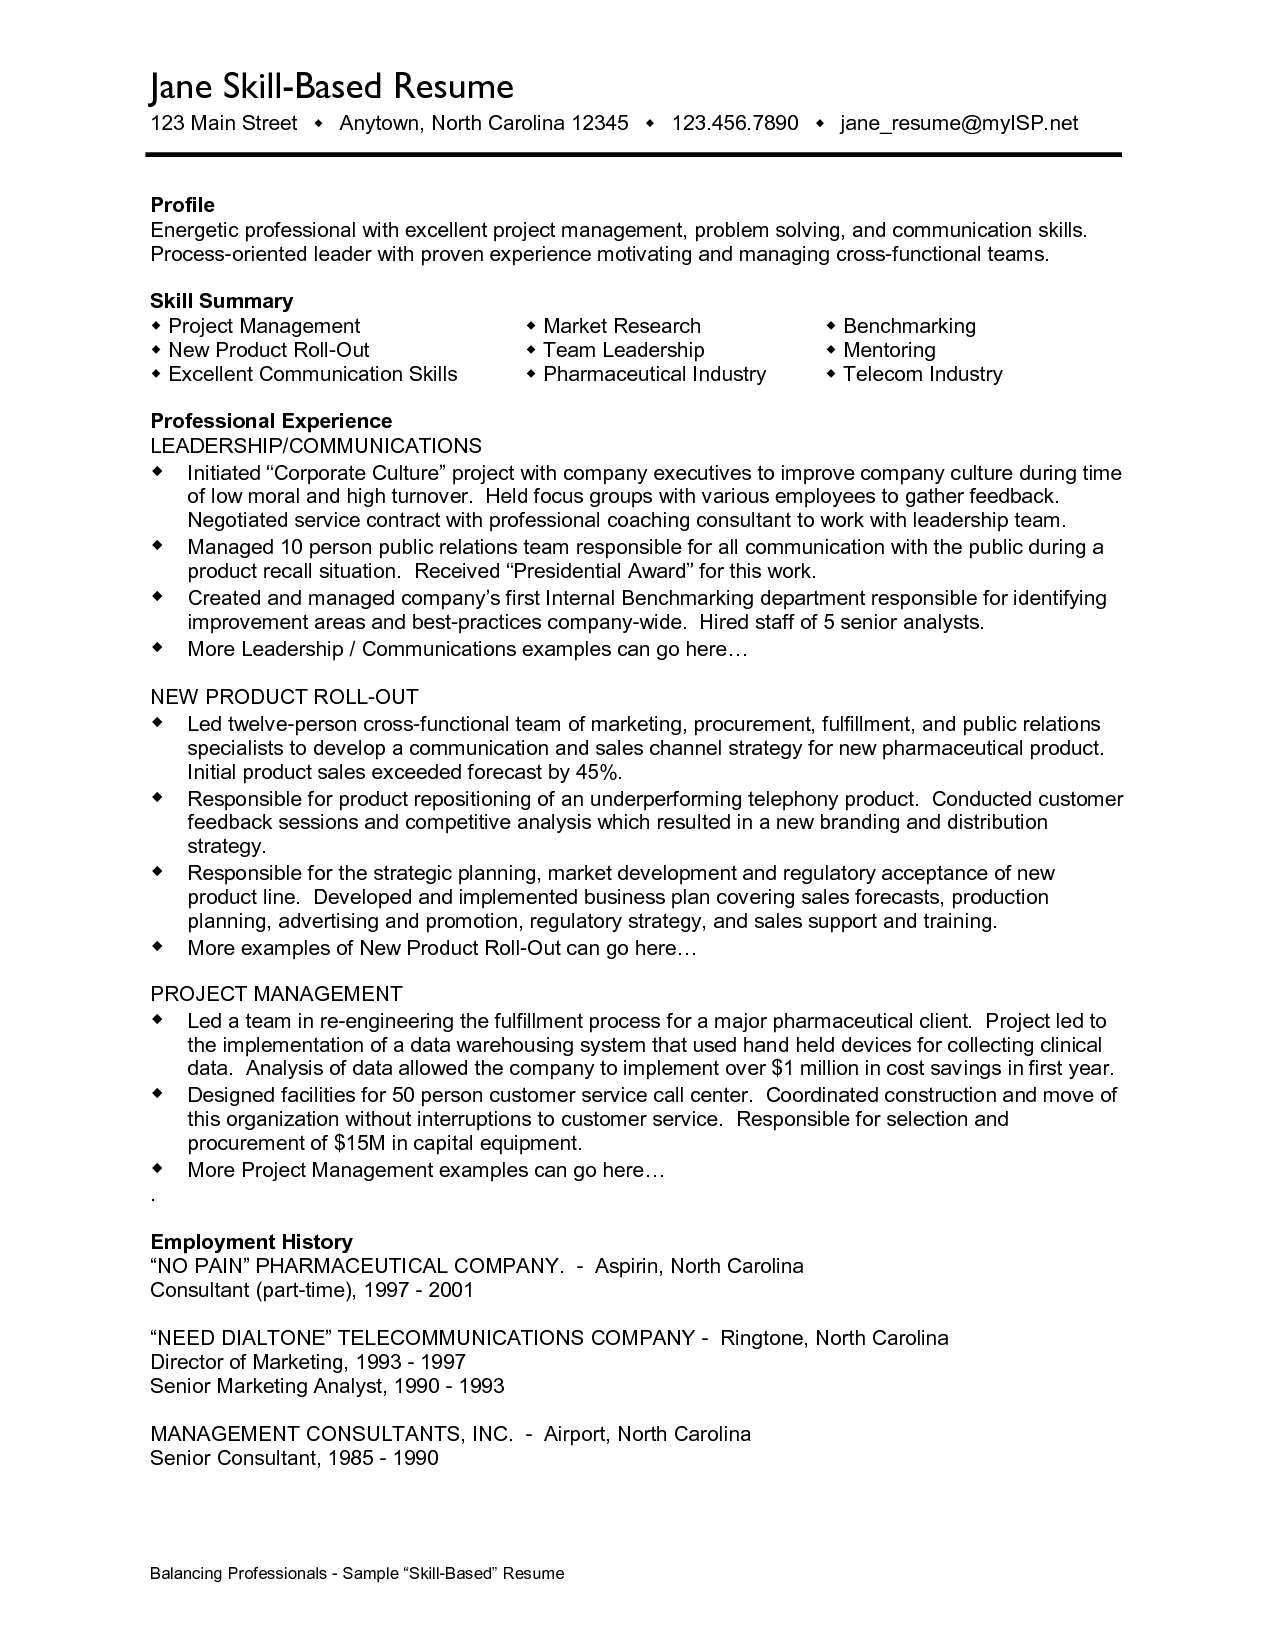 Examples Of A Resume Job Resume Communication Skills  Httpwwwresumecareerjob